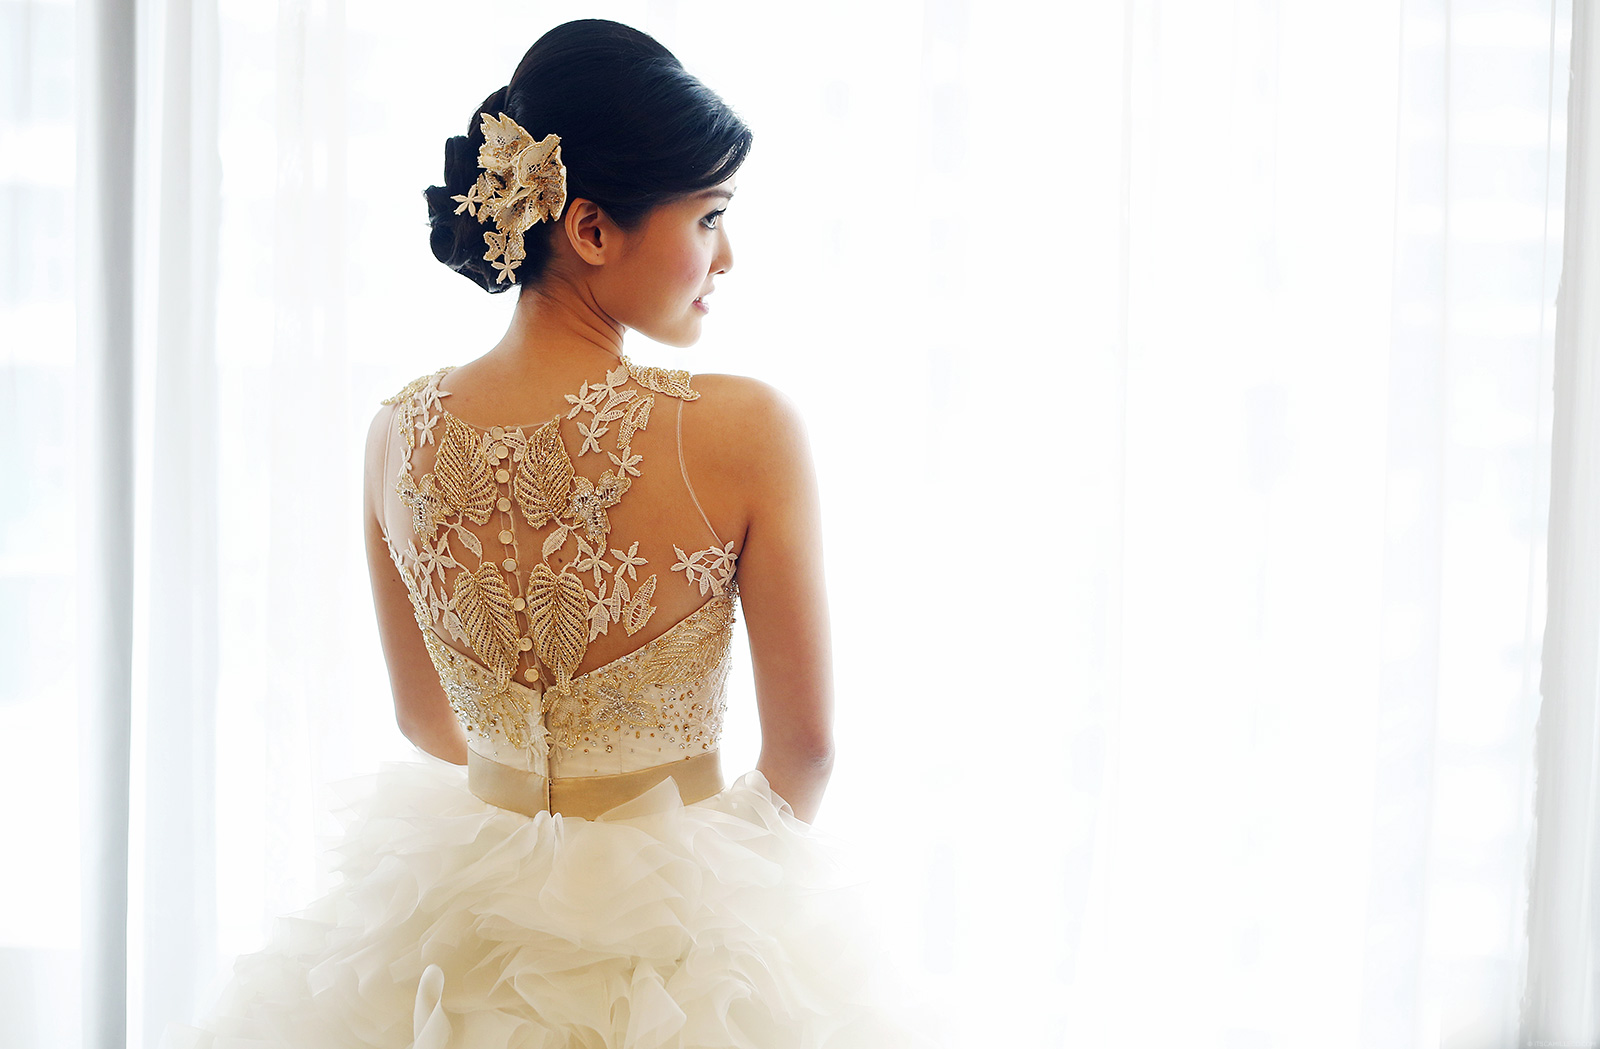 Coexist By Camille Co Bridall: Lace and gold wedding gown | www.itscamilleco.com